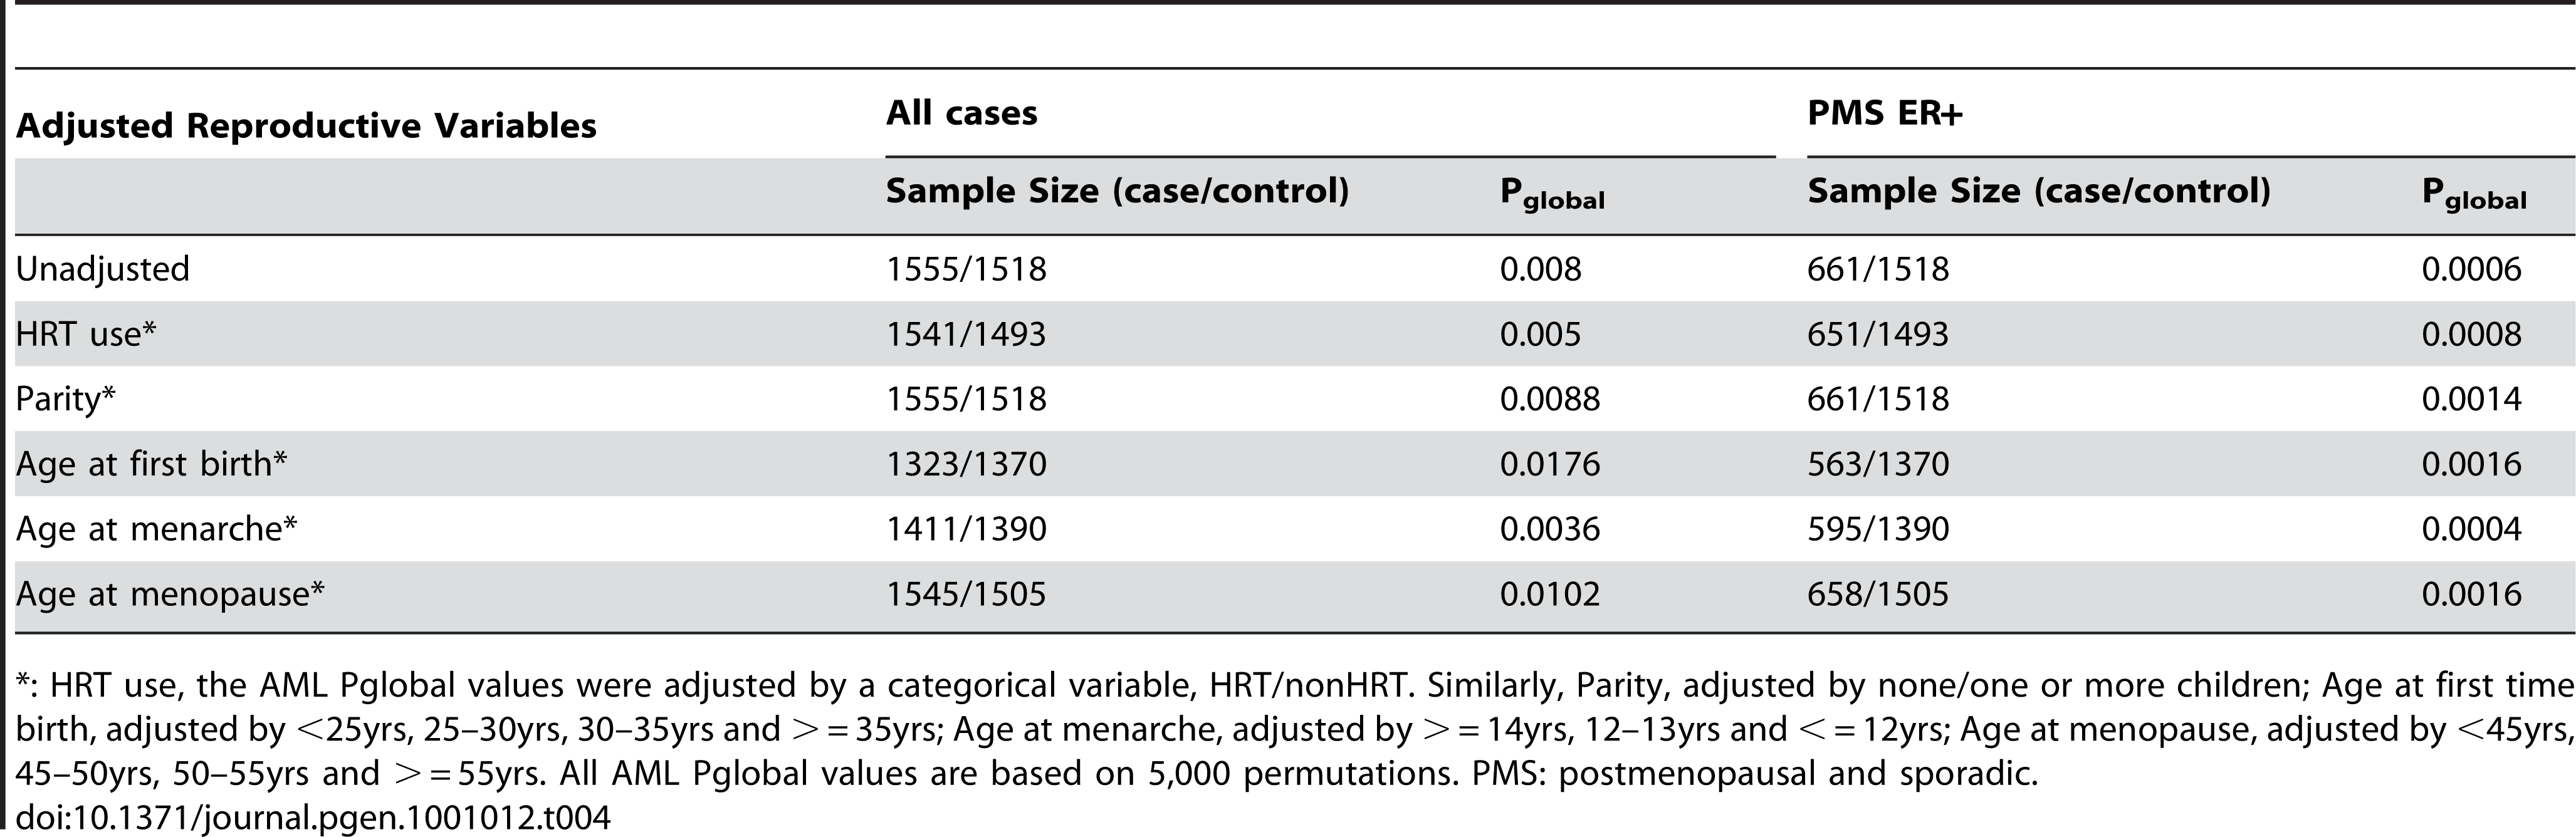 P<sub>global</sub> values for the androgen-to-estrogen sub-pathway for all cases and for PMS ER+ cases in the Swedish sample set, adjusted for reproductive and hormone risk factors.